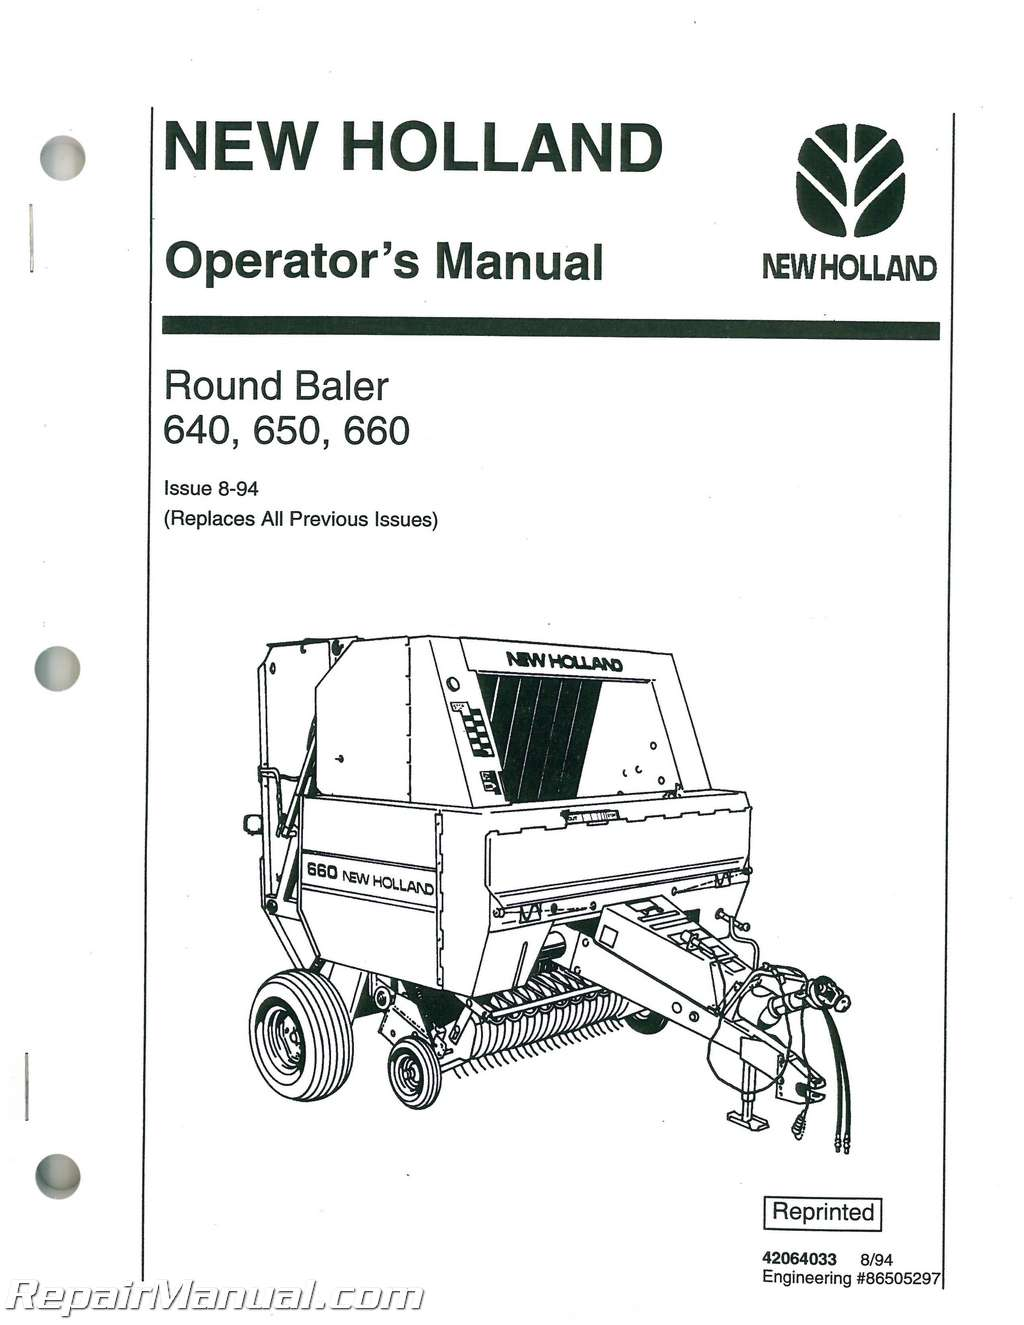 new holland 640 650 660 large round baler operators manual rh repairmanual com new holland manuals on ebay new holland manuals br750 free download